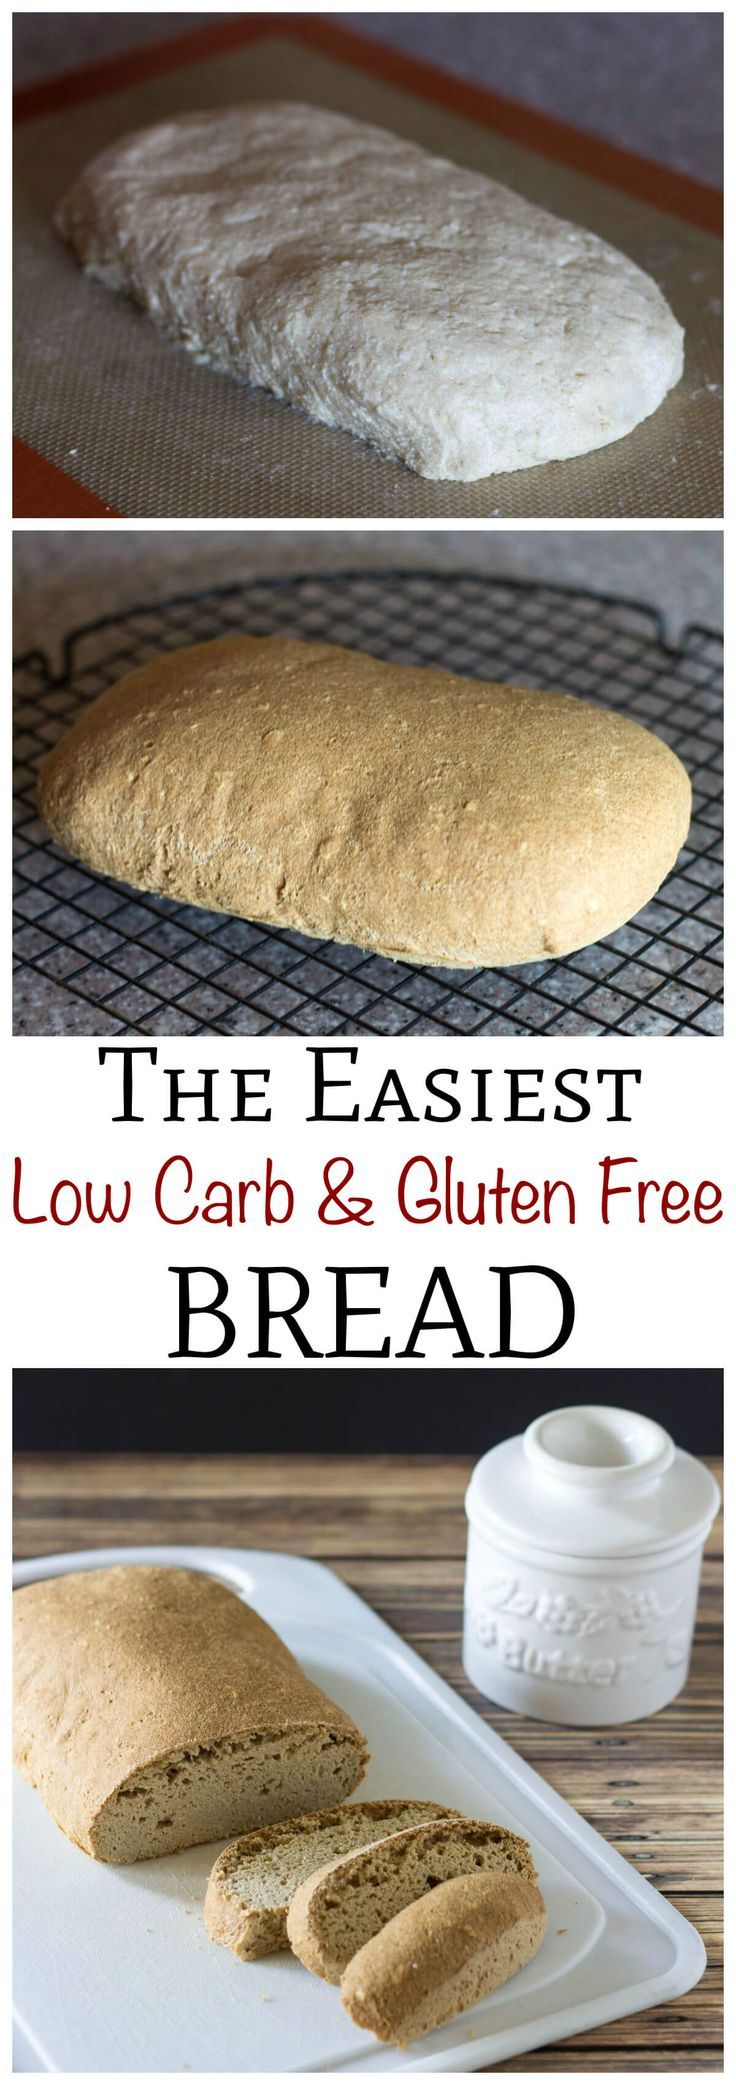 Sukrin Oat Sesame Bread Mix makes the easiest gluten free low carb bread ever! All you need are the mix and water. Just mix ingredients, shape, and bake!